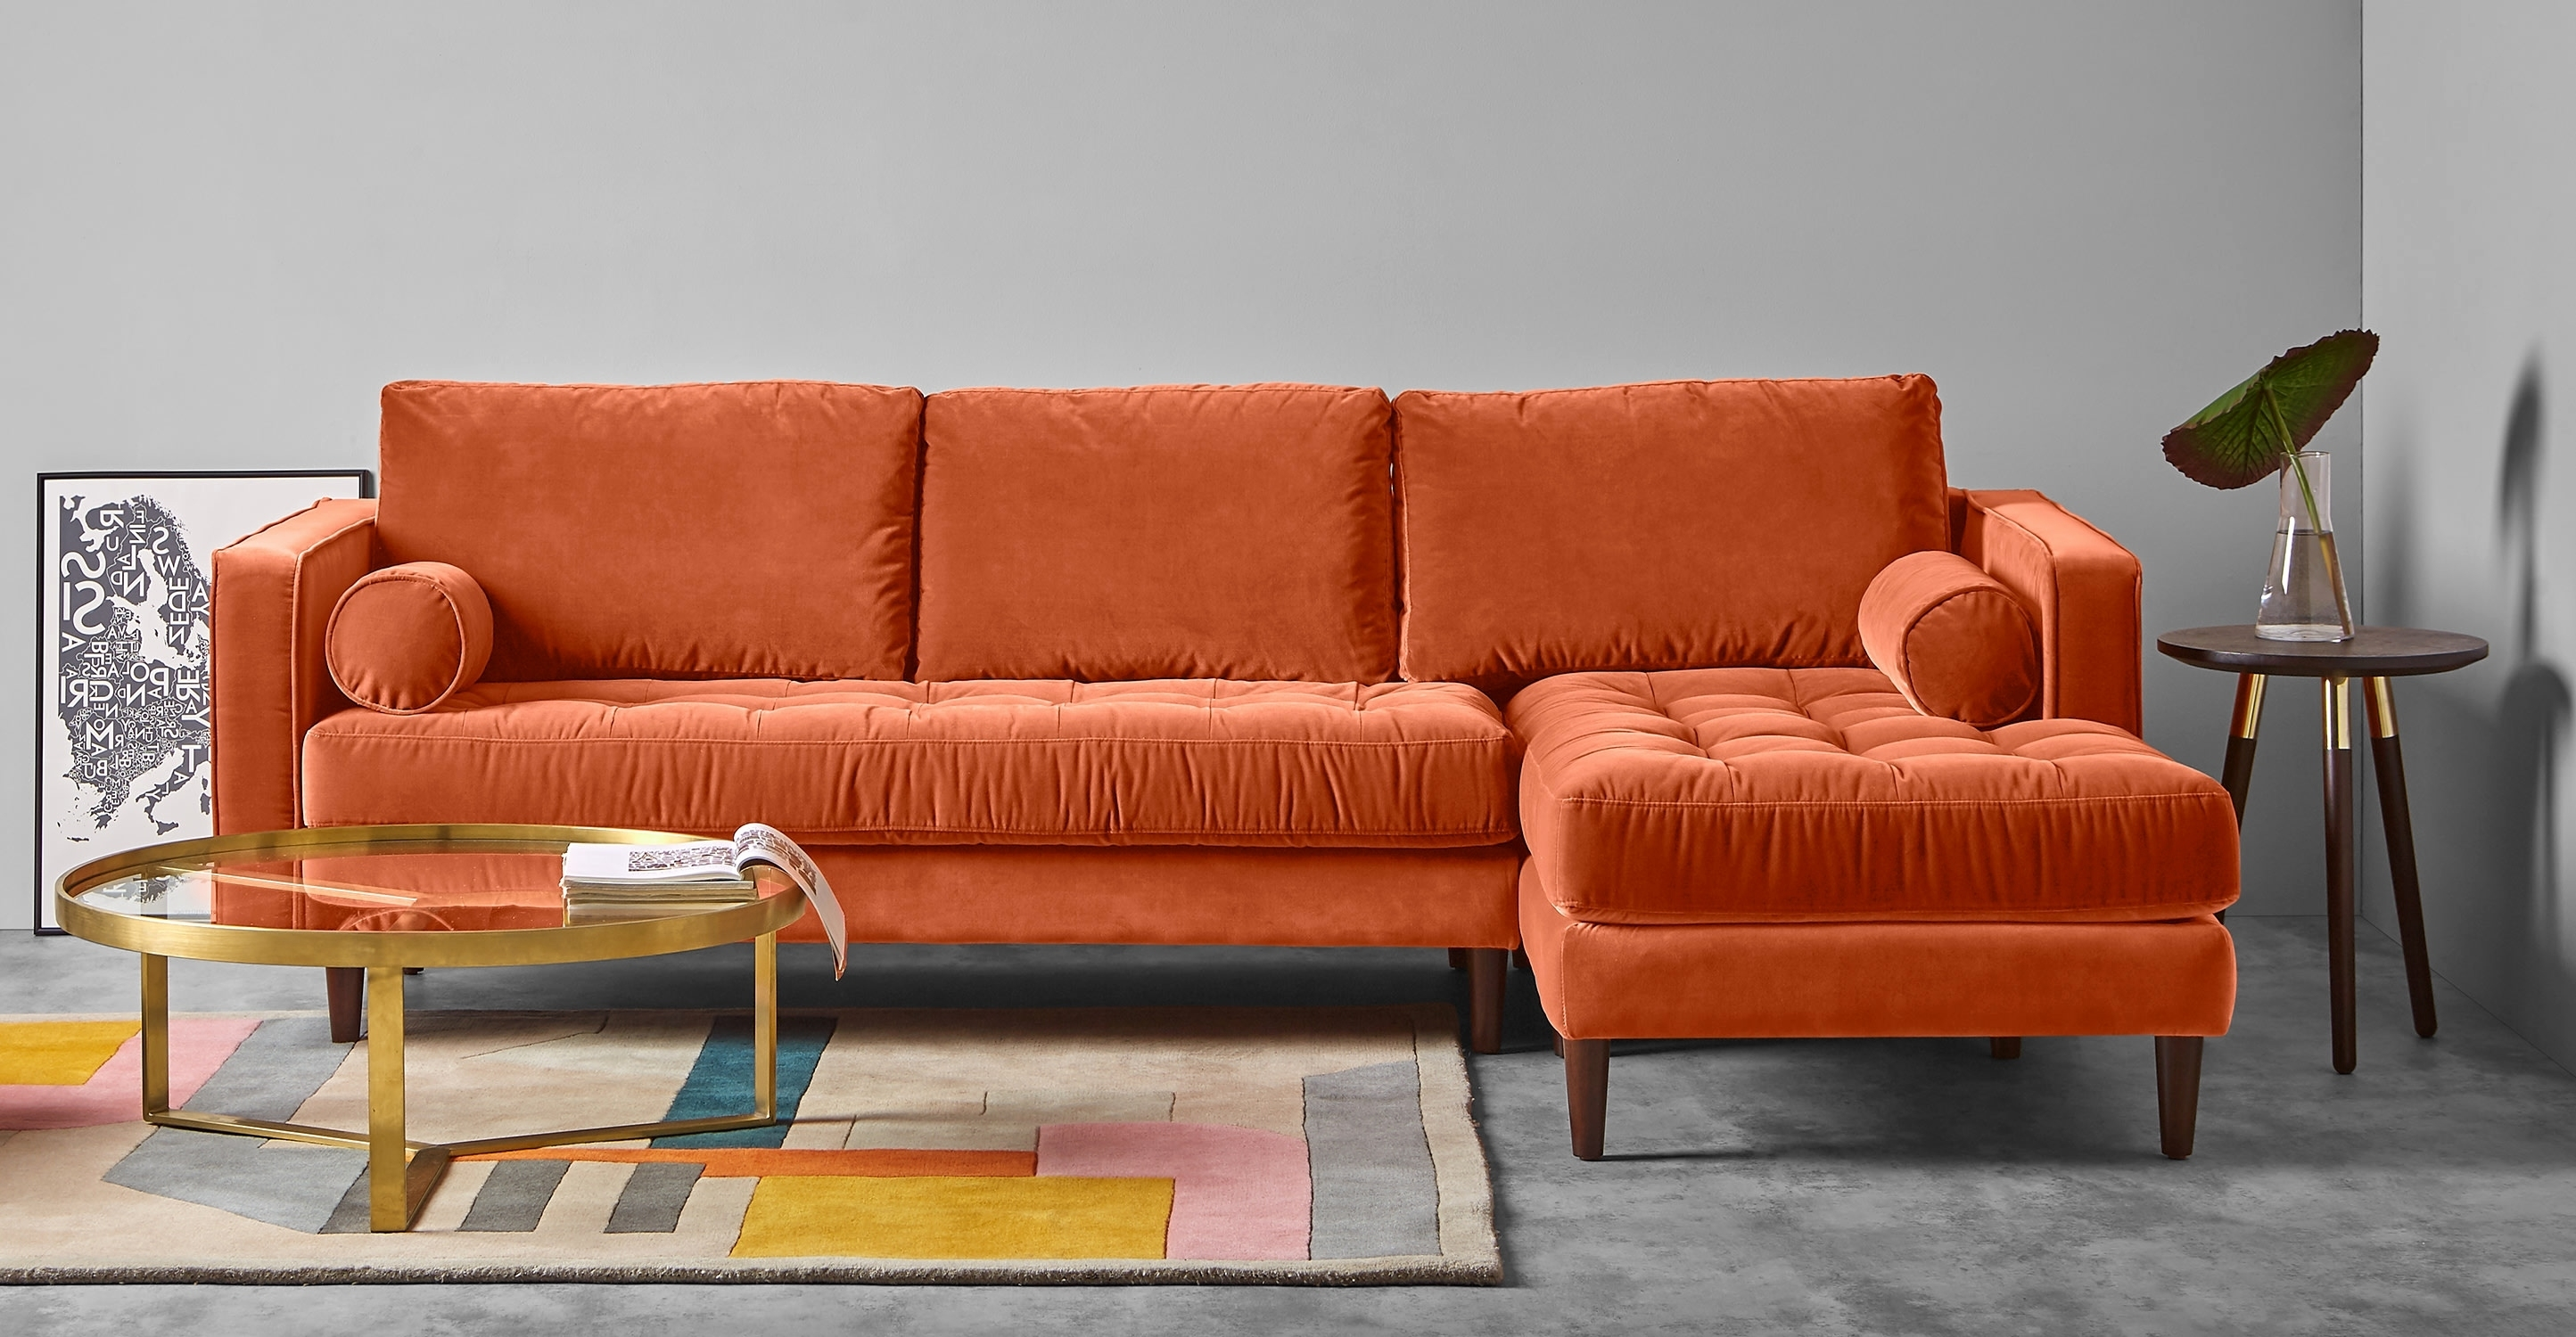 Leather Sectional Sofas Orange County Ca | Ezhandui Intended For Orange County Ca Sectional Sofas (View 6 of 10)